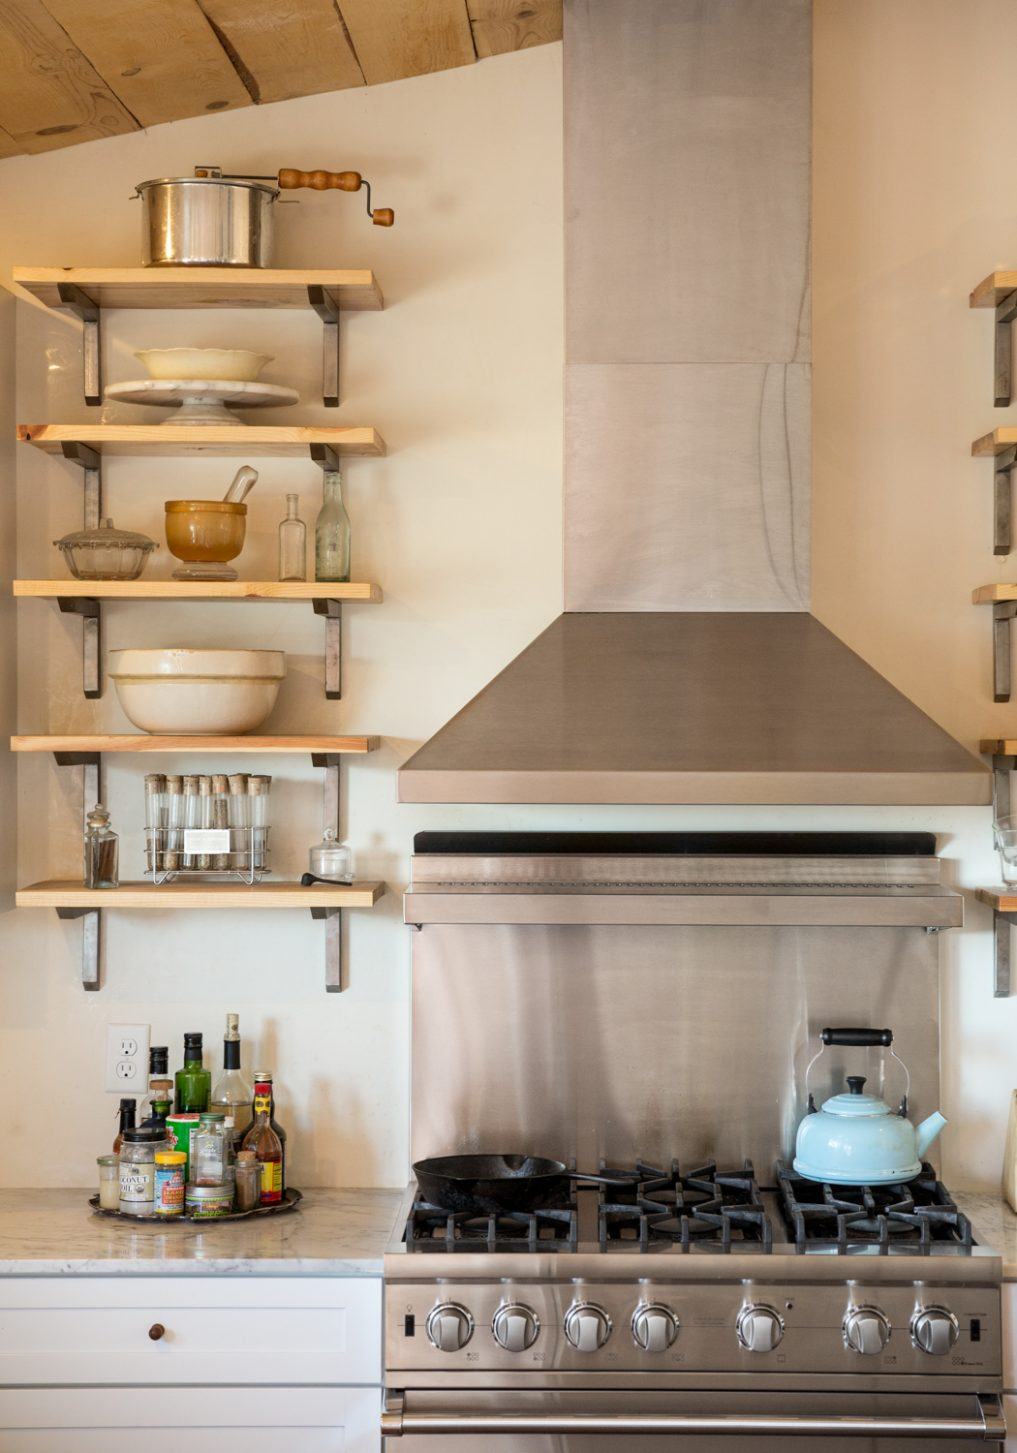 Wood and metal open kitchen shelves